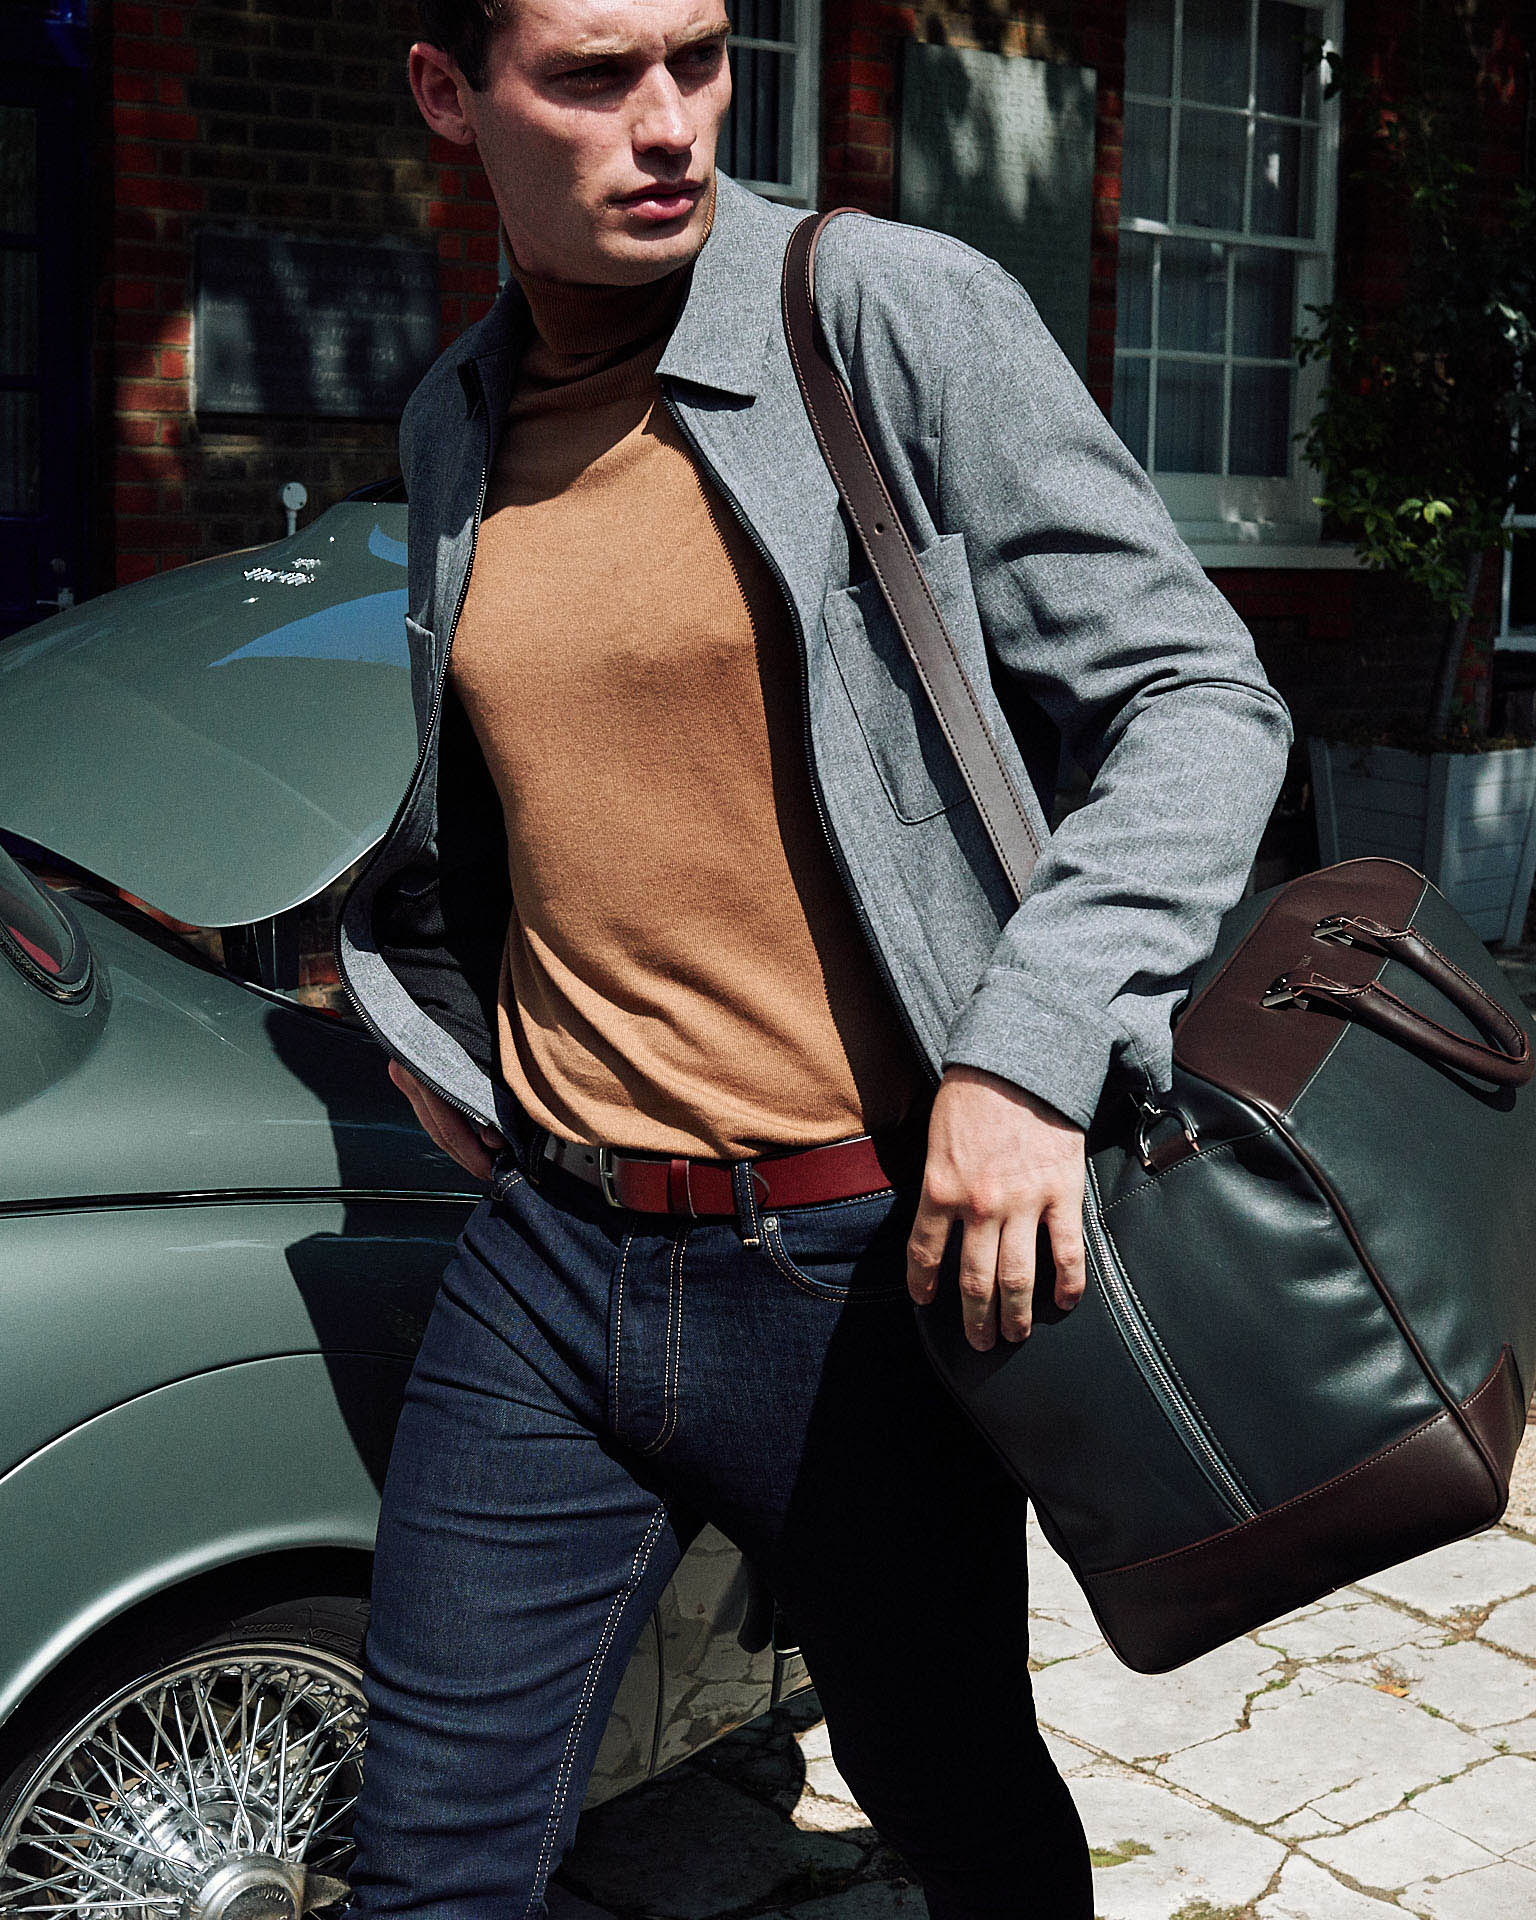 Tusting  stride with holdall by lifestyle photographer Tim Cole